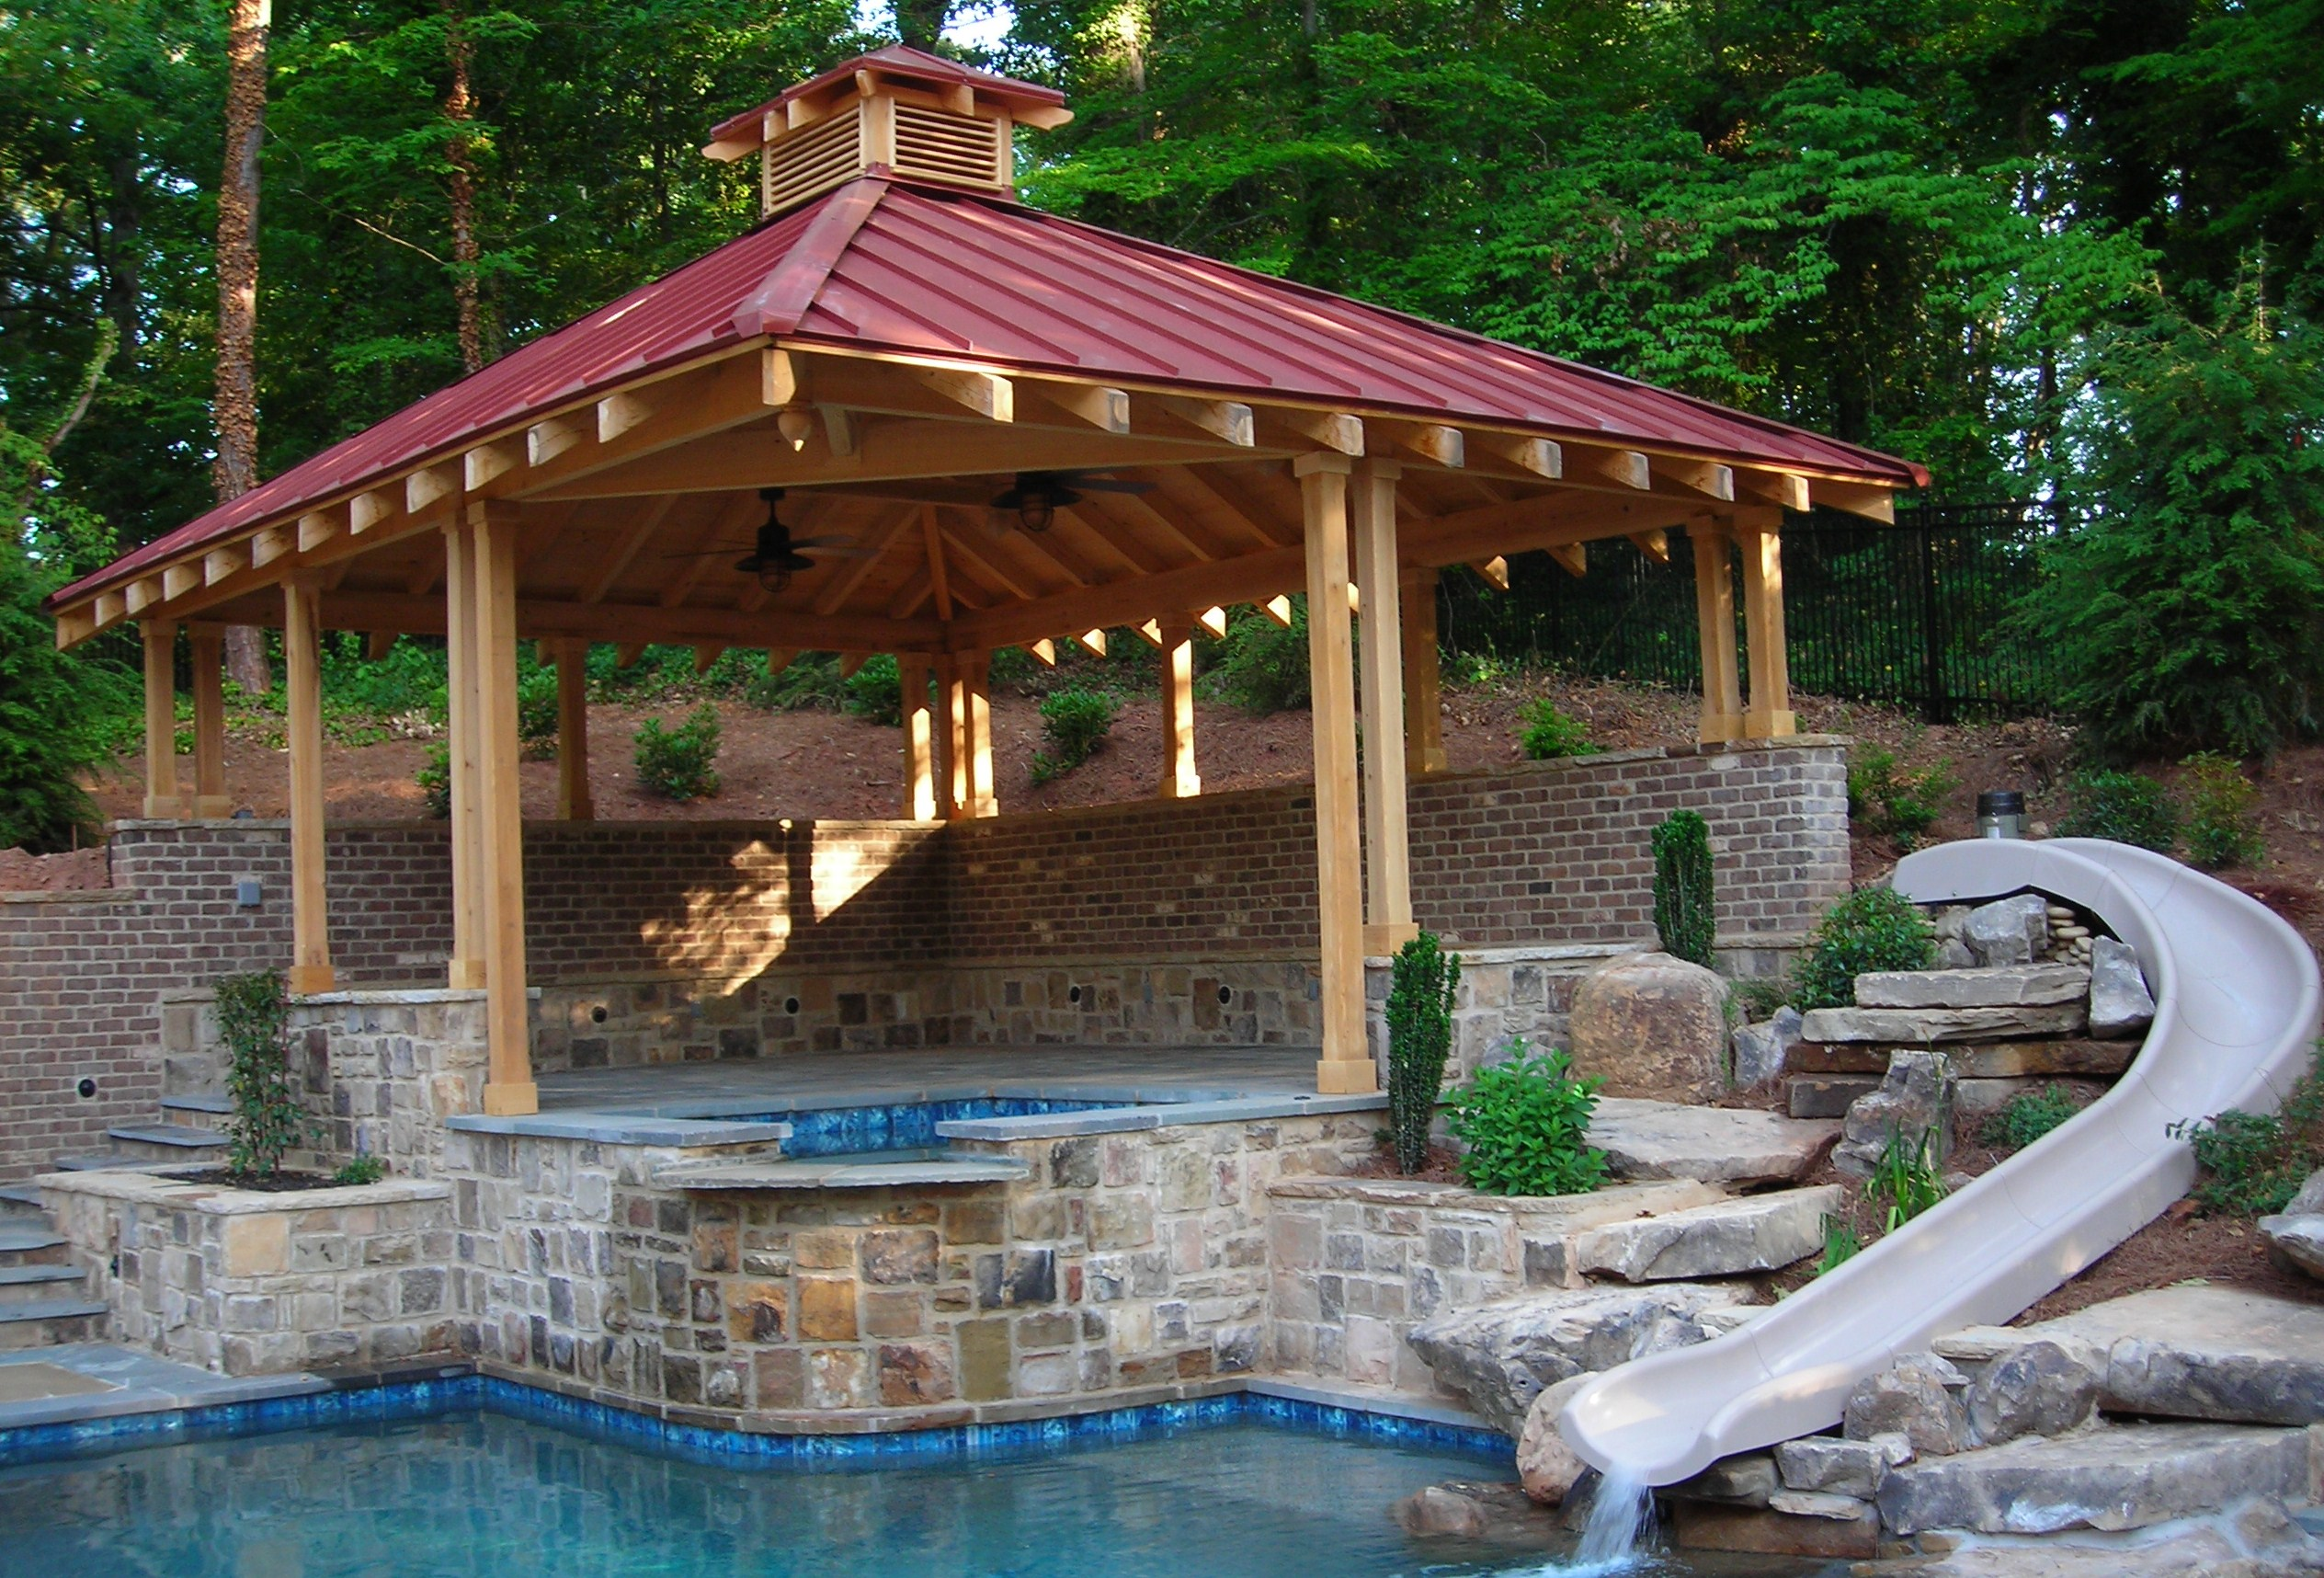 Fire Pit Gazebo Plans http://tmark.no/9/wood-gazebo-pictures